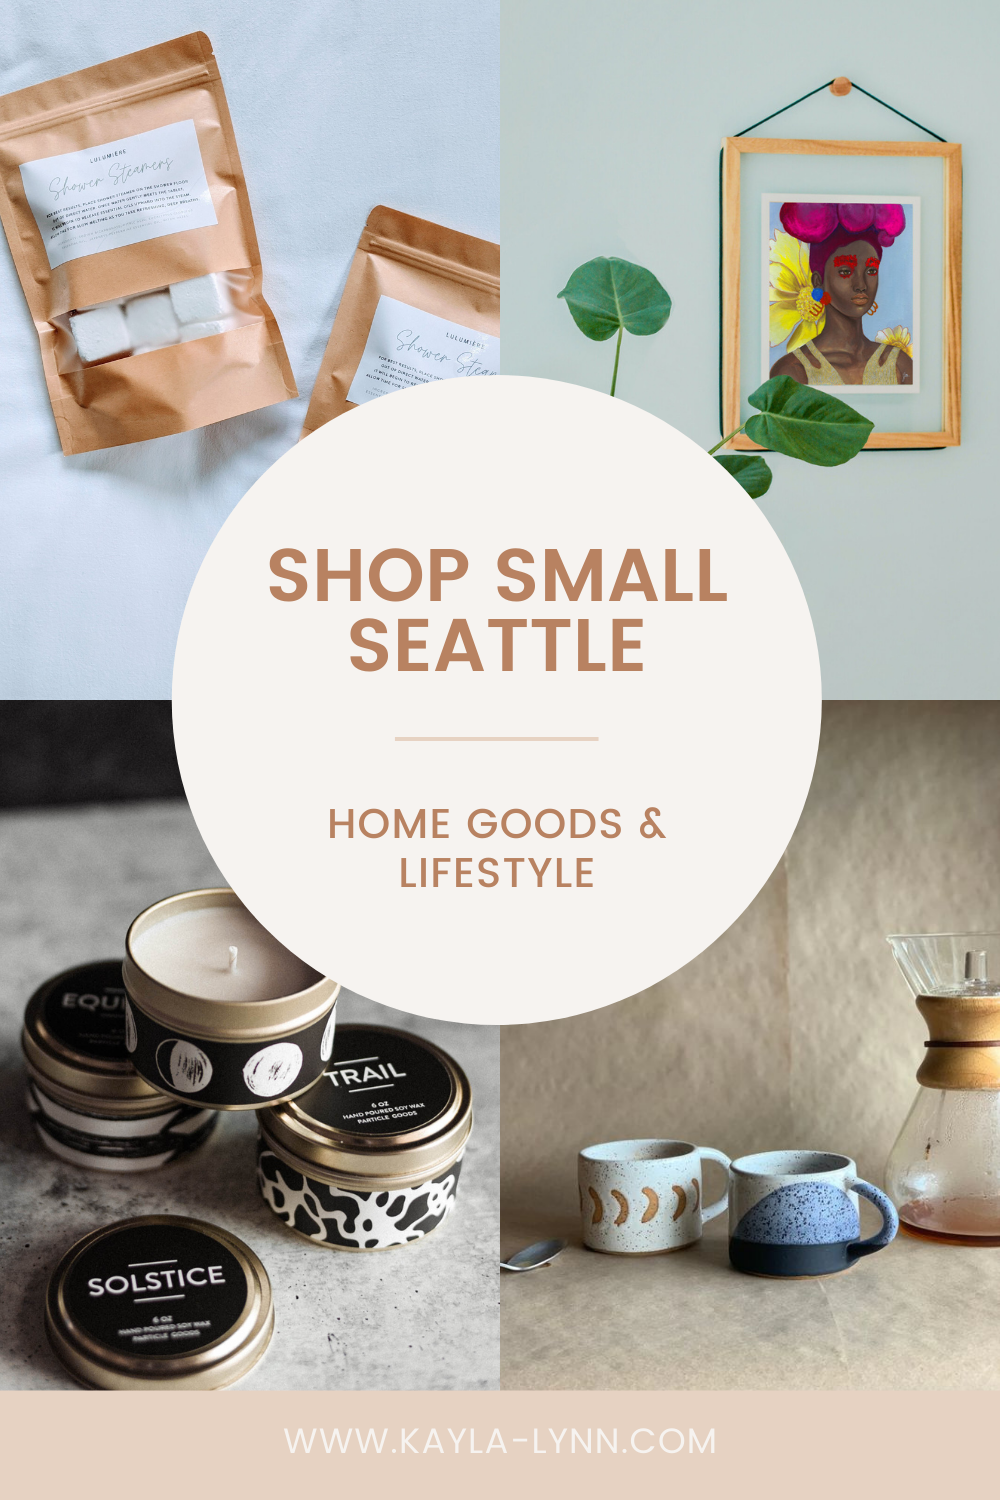 Shop Small Seattle Home Goods & Lifestyle Pinterest image